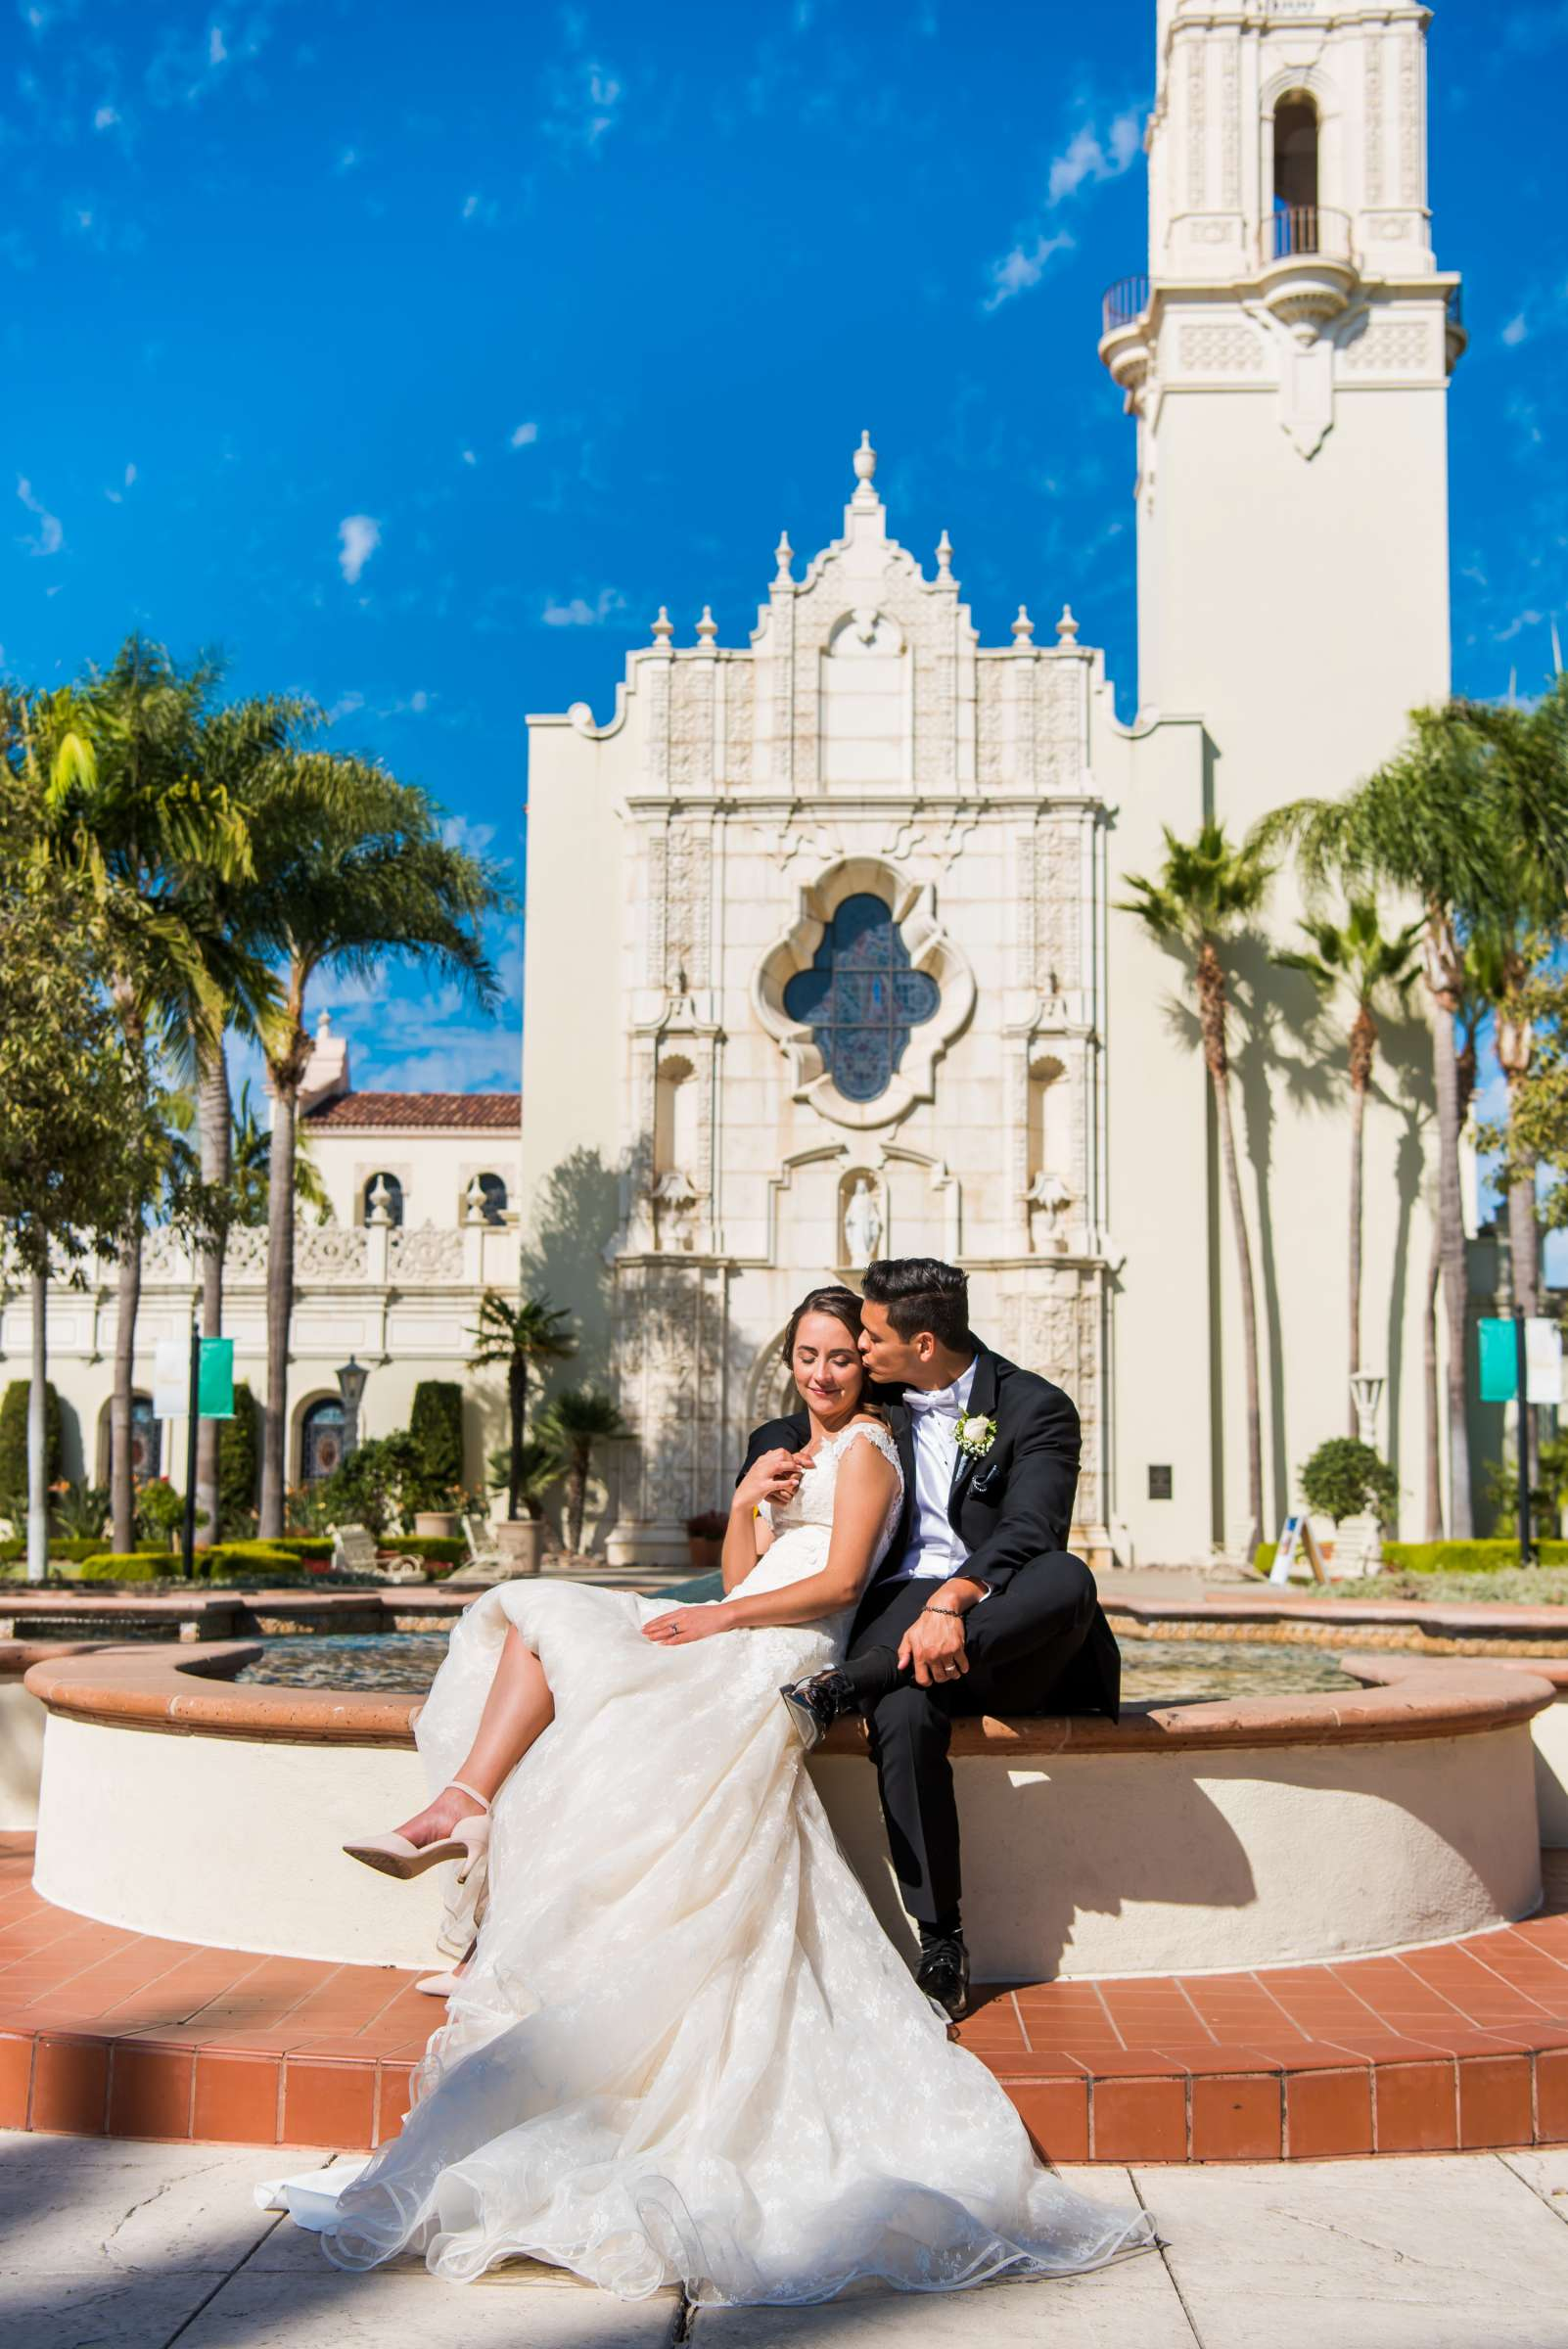 The Immaculata Wedding, Arianna and Jonah Wedding Photo #18 by True Photography